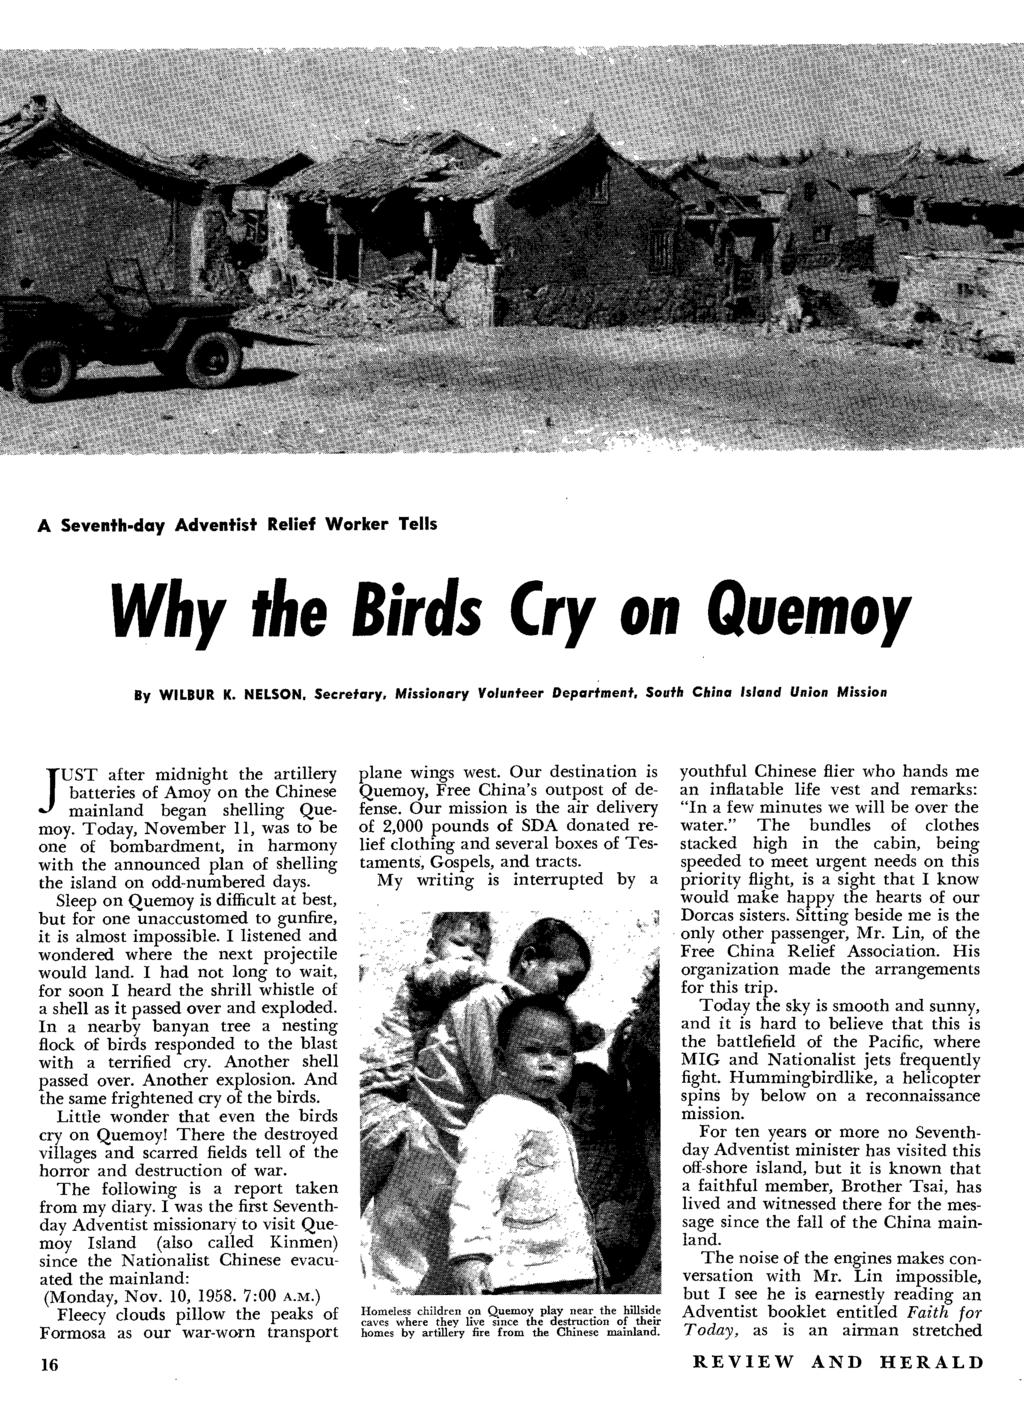 A Seventh-day Adventist Relief Worker Tells Why the Birds Cry on Quemoy By WILBUR K. NELSON.